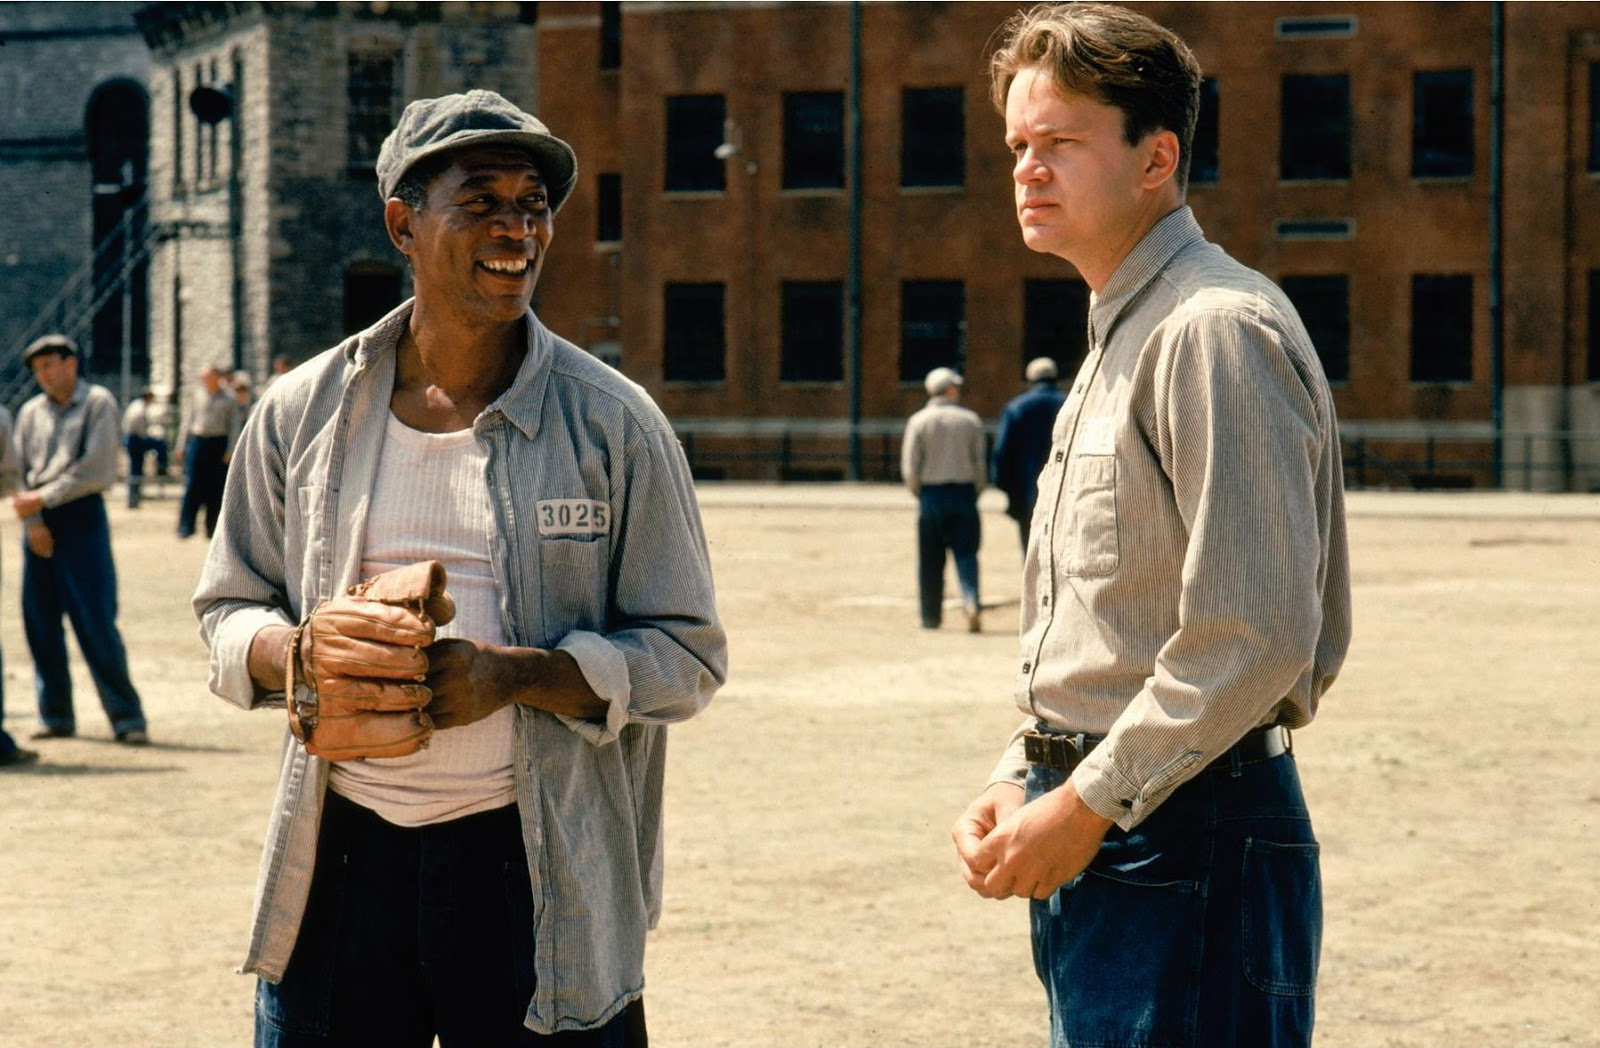 http://3.bp.blogspot.com/--7MV5p7O40A/UUuQWsy99zI/AAAAAAAAAT8/-ClEjVQA4GM/s1600/The-Shawshank-Redemption-featured-image.jpg